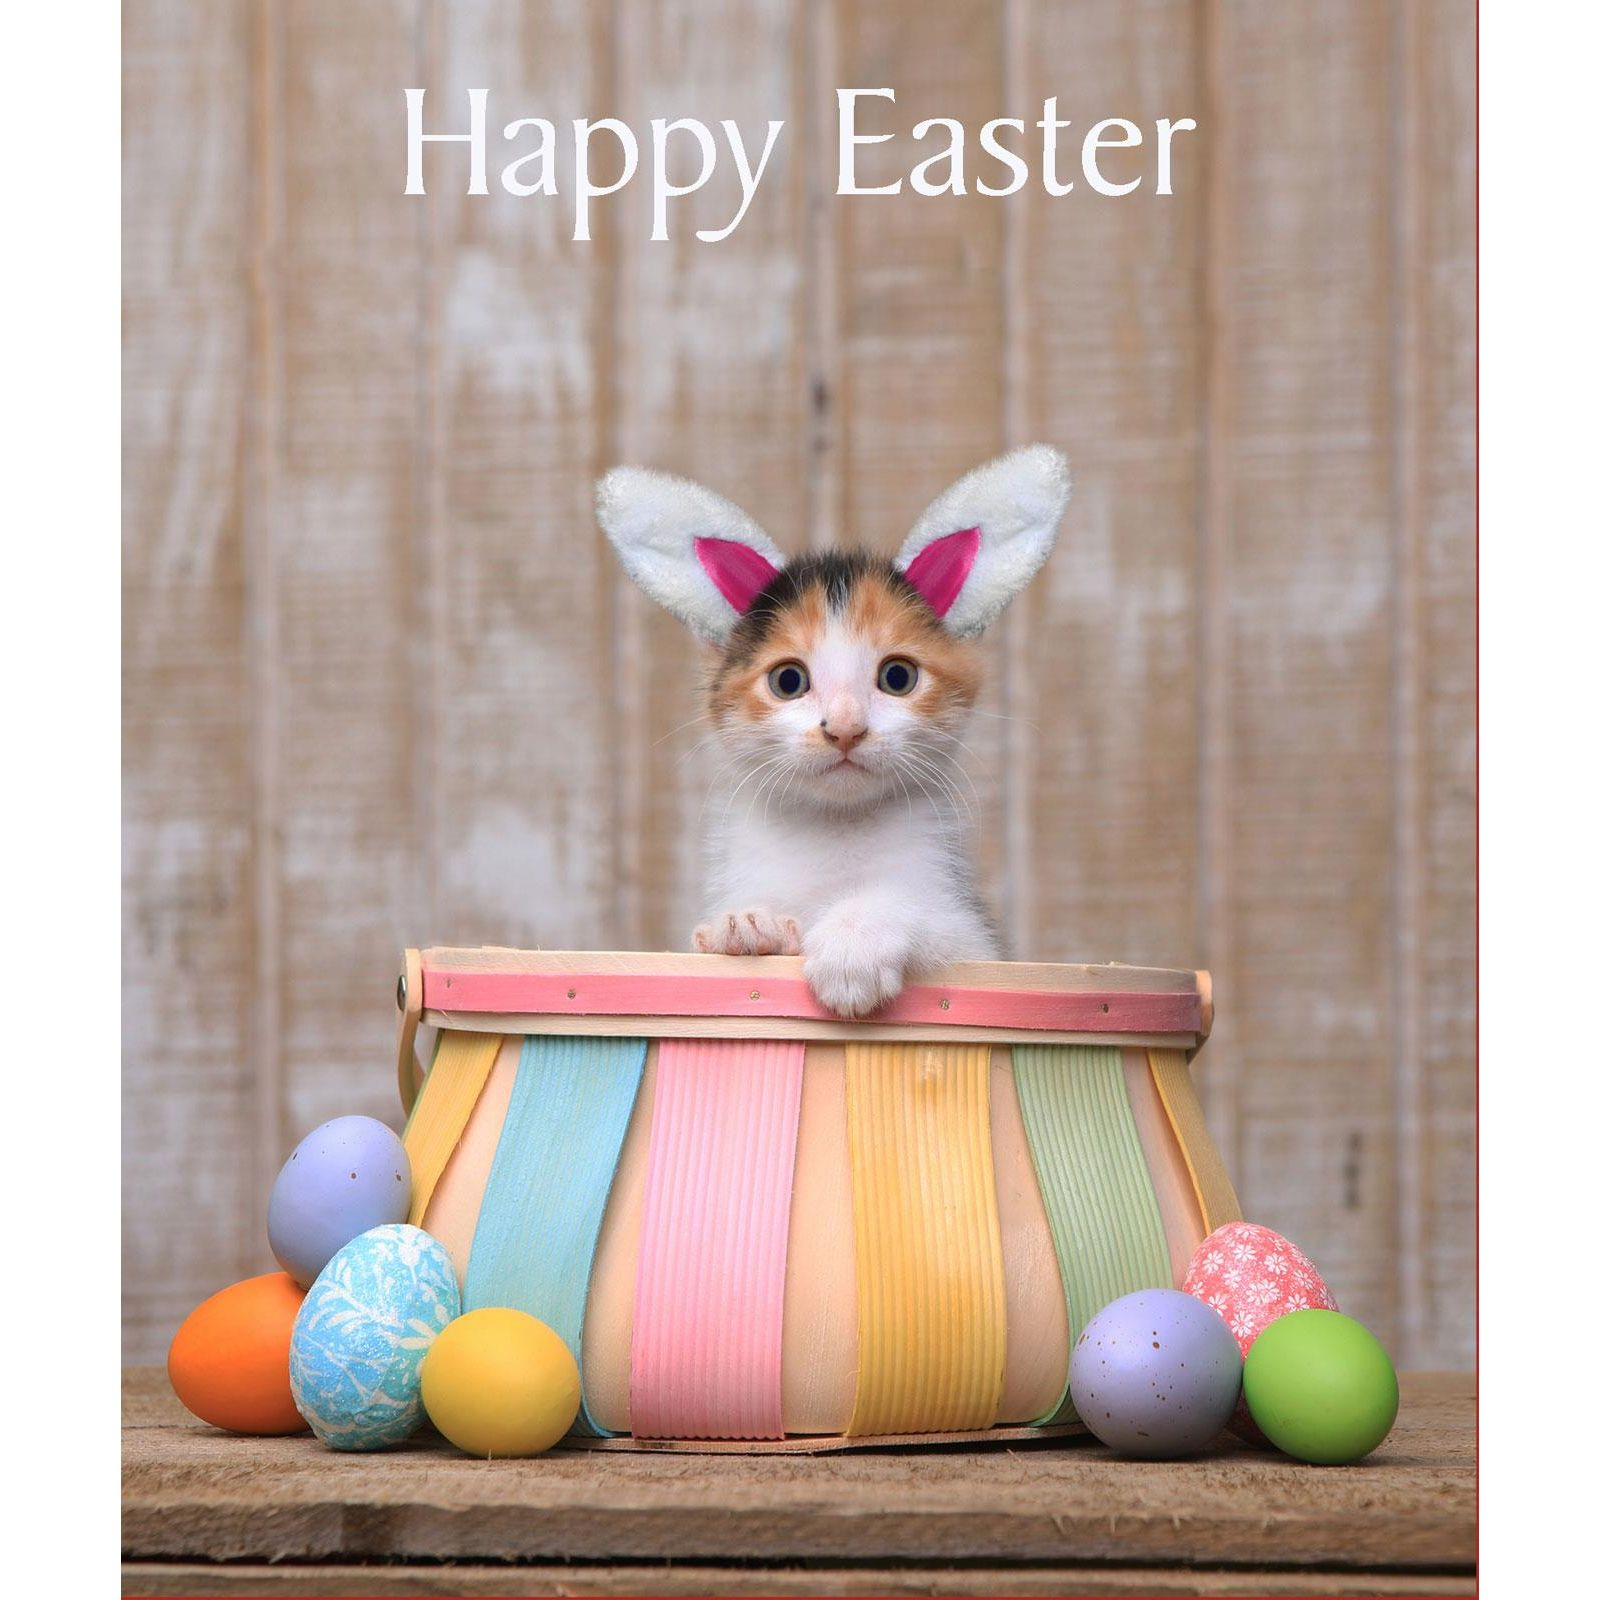 Happy Easter Cat Card